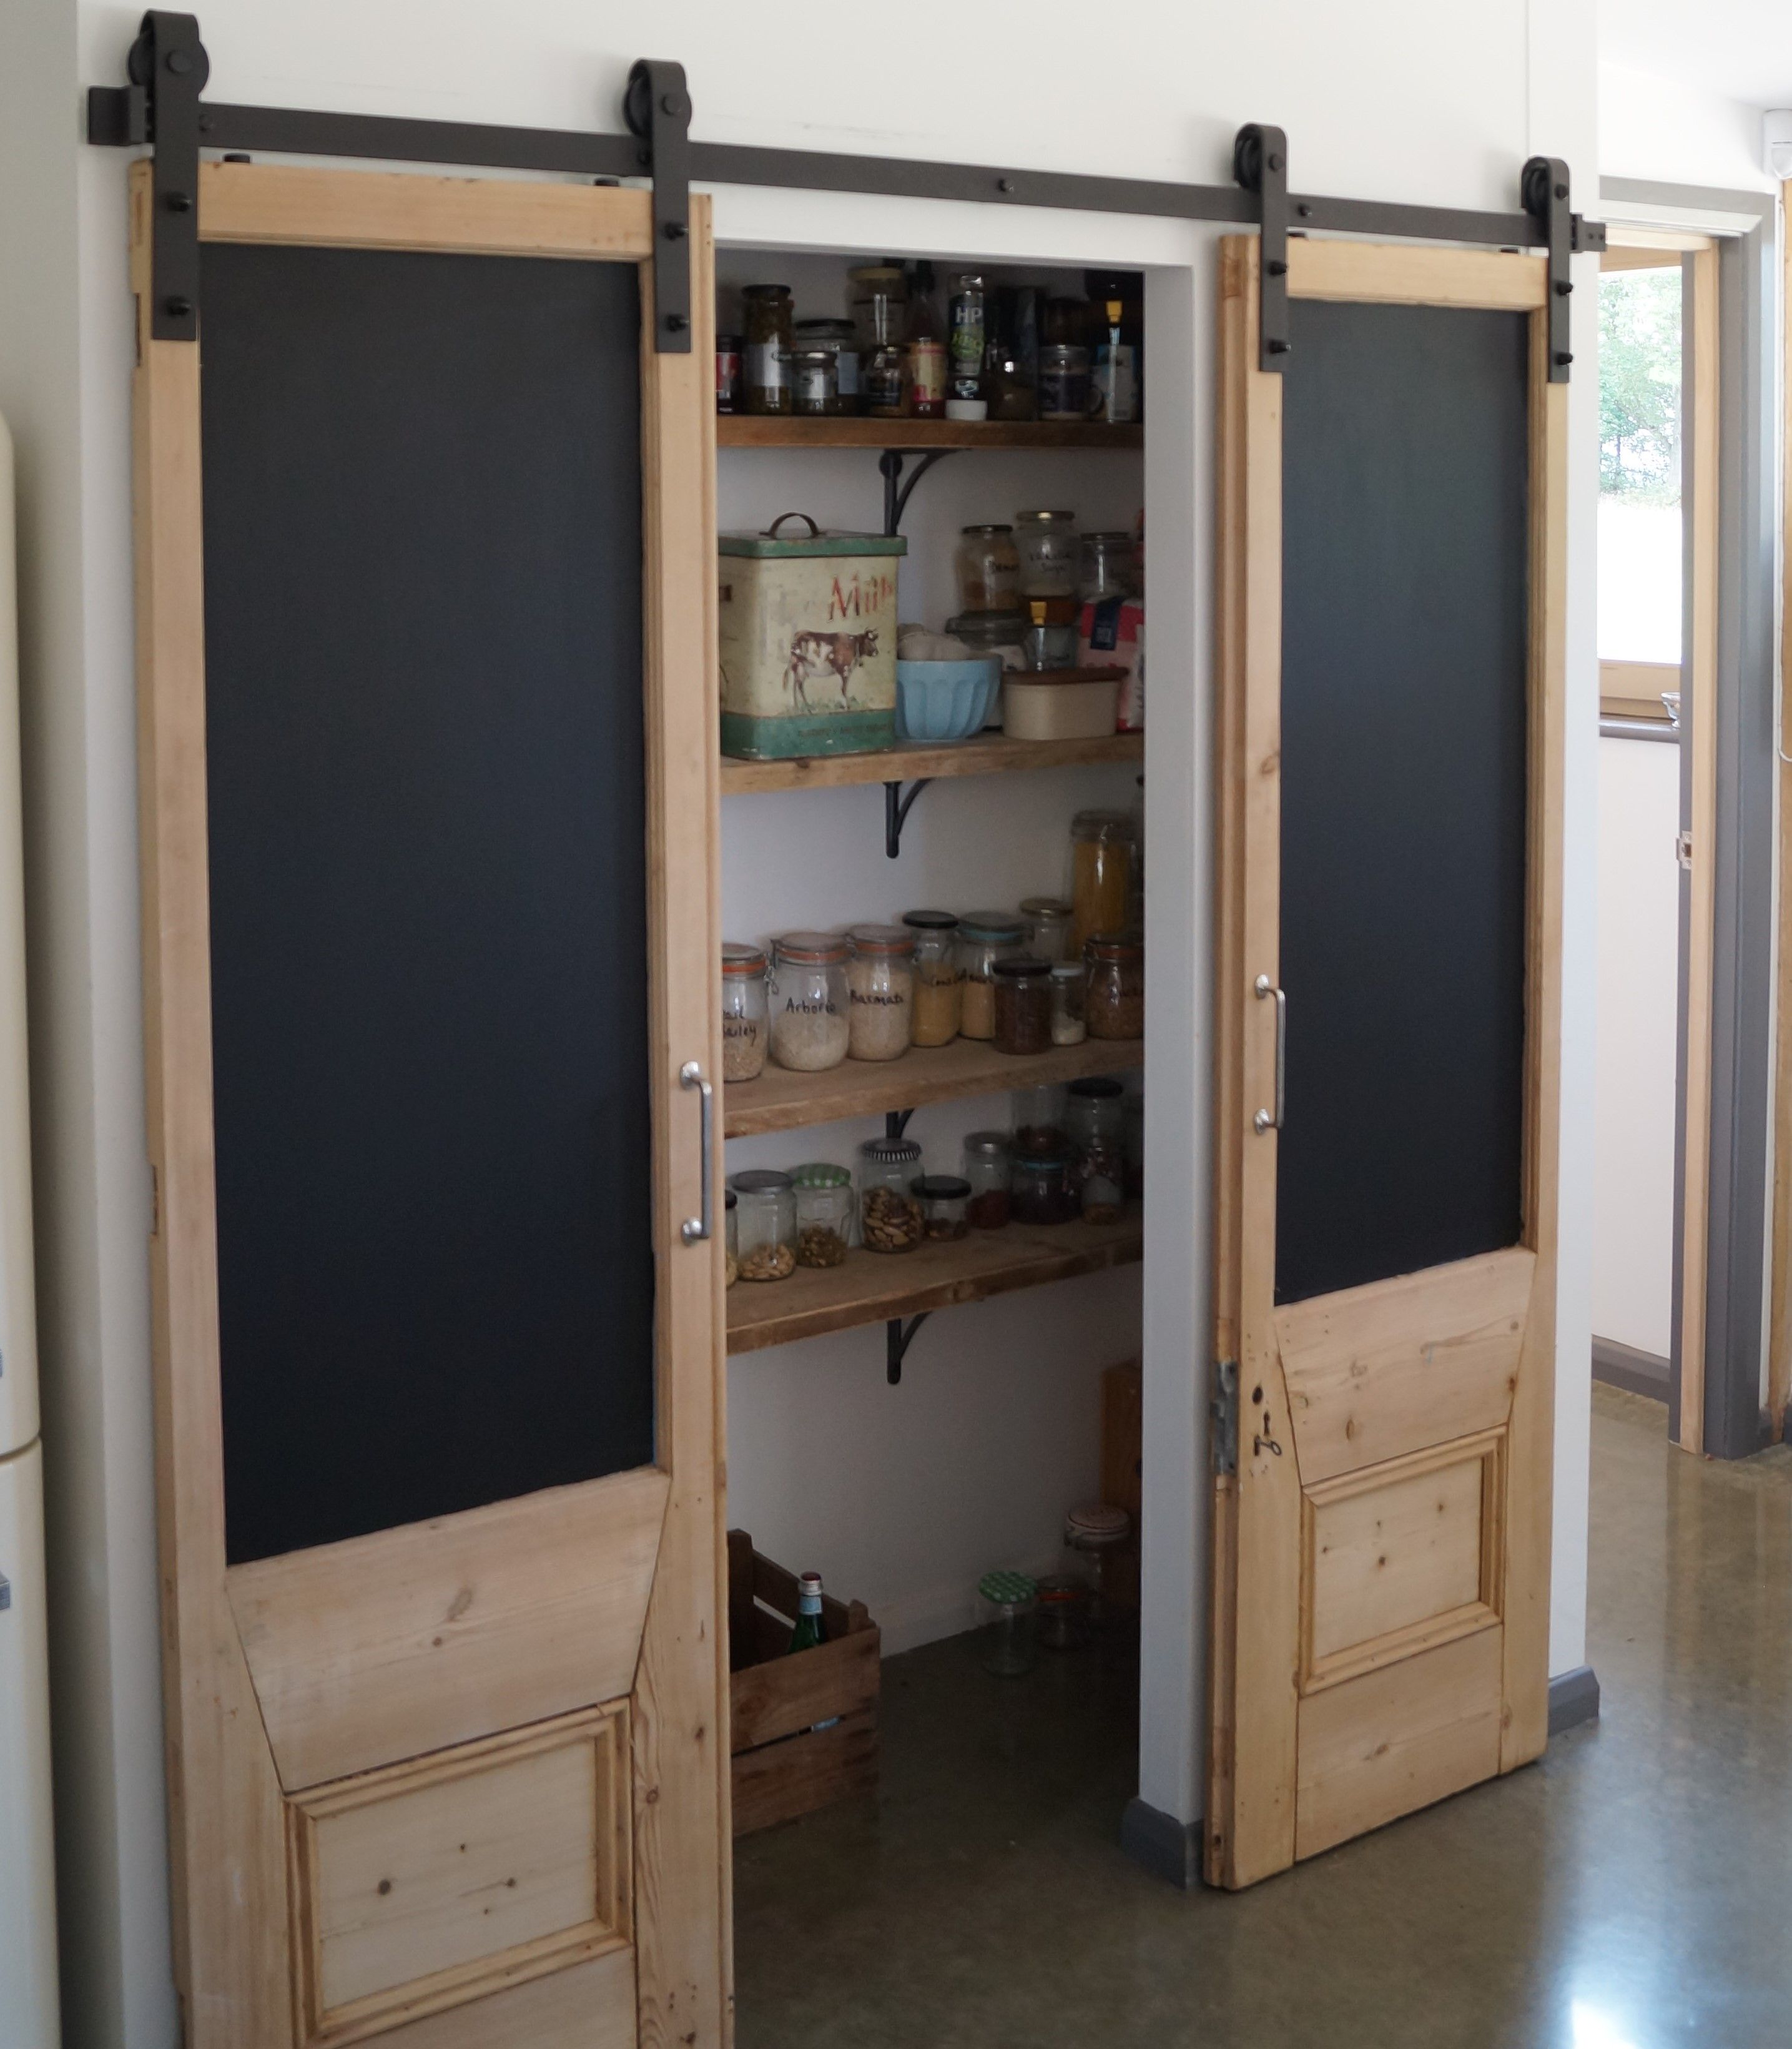 Top Hung Sliding Pantry Doors With Blackboard Inserts Fiveoakprojectscom